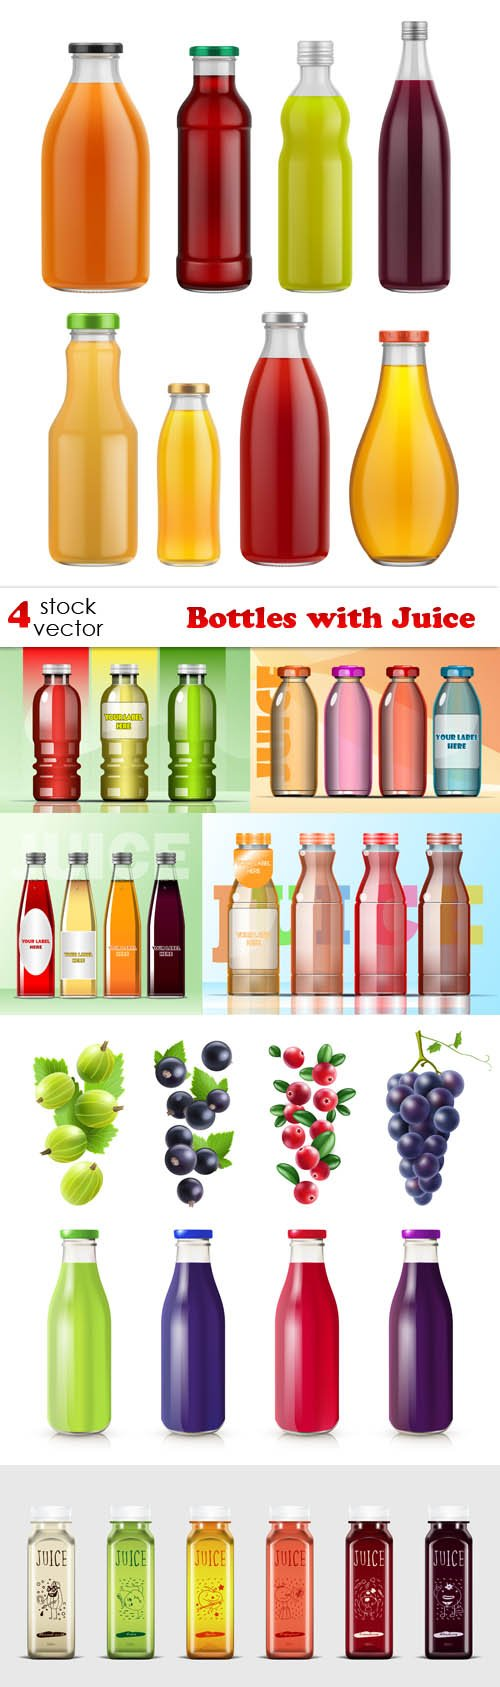 Vectors - Bottles with Juice